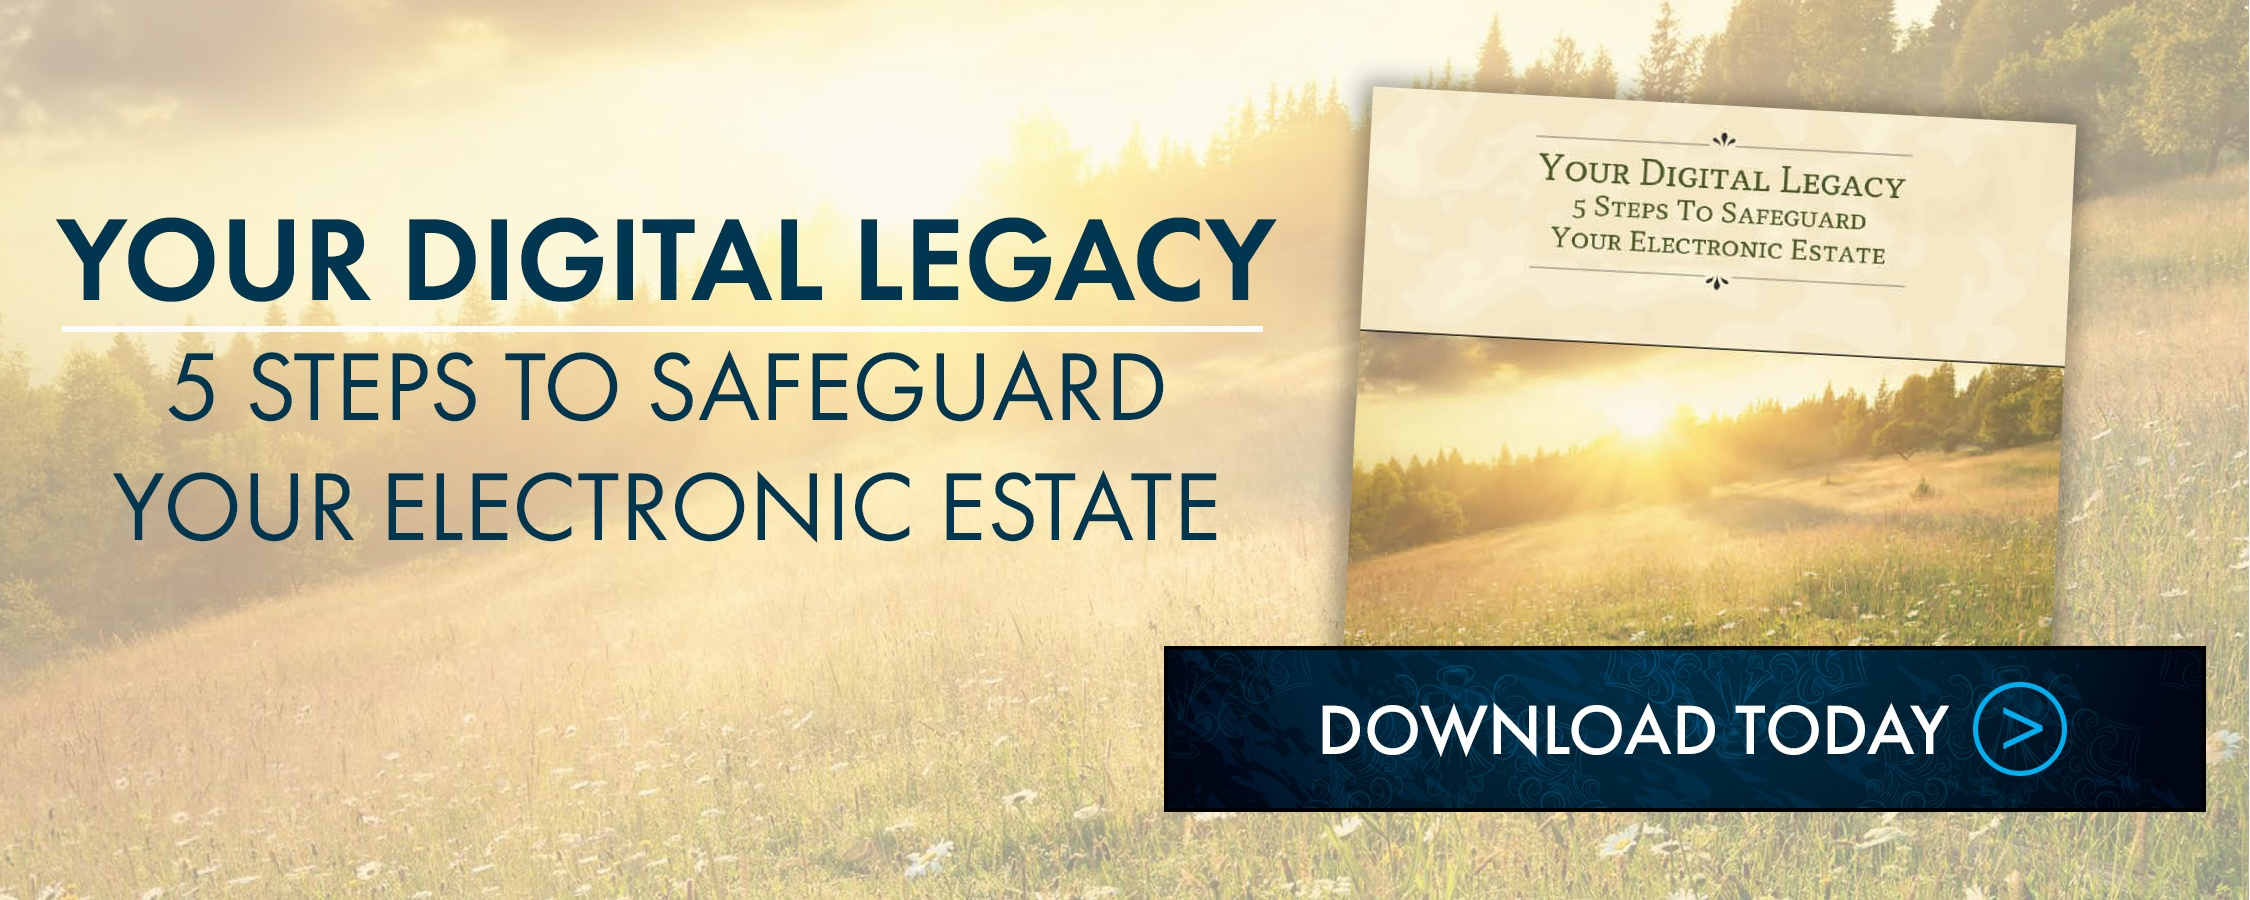 Your Digital Legacy: 5 Steps to Safeguard Your Electronic Estate